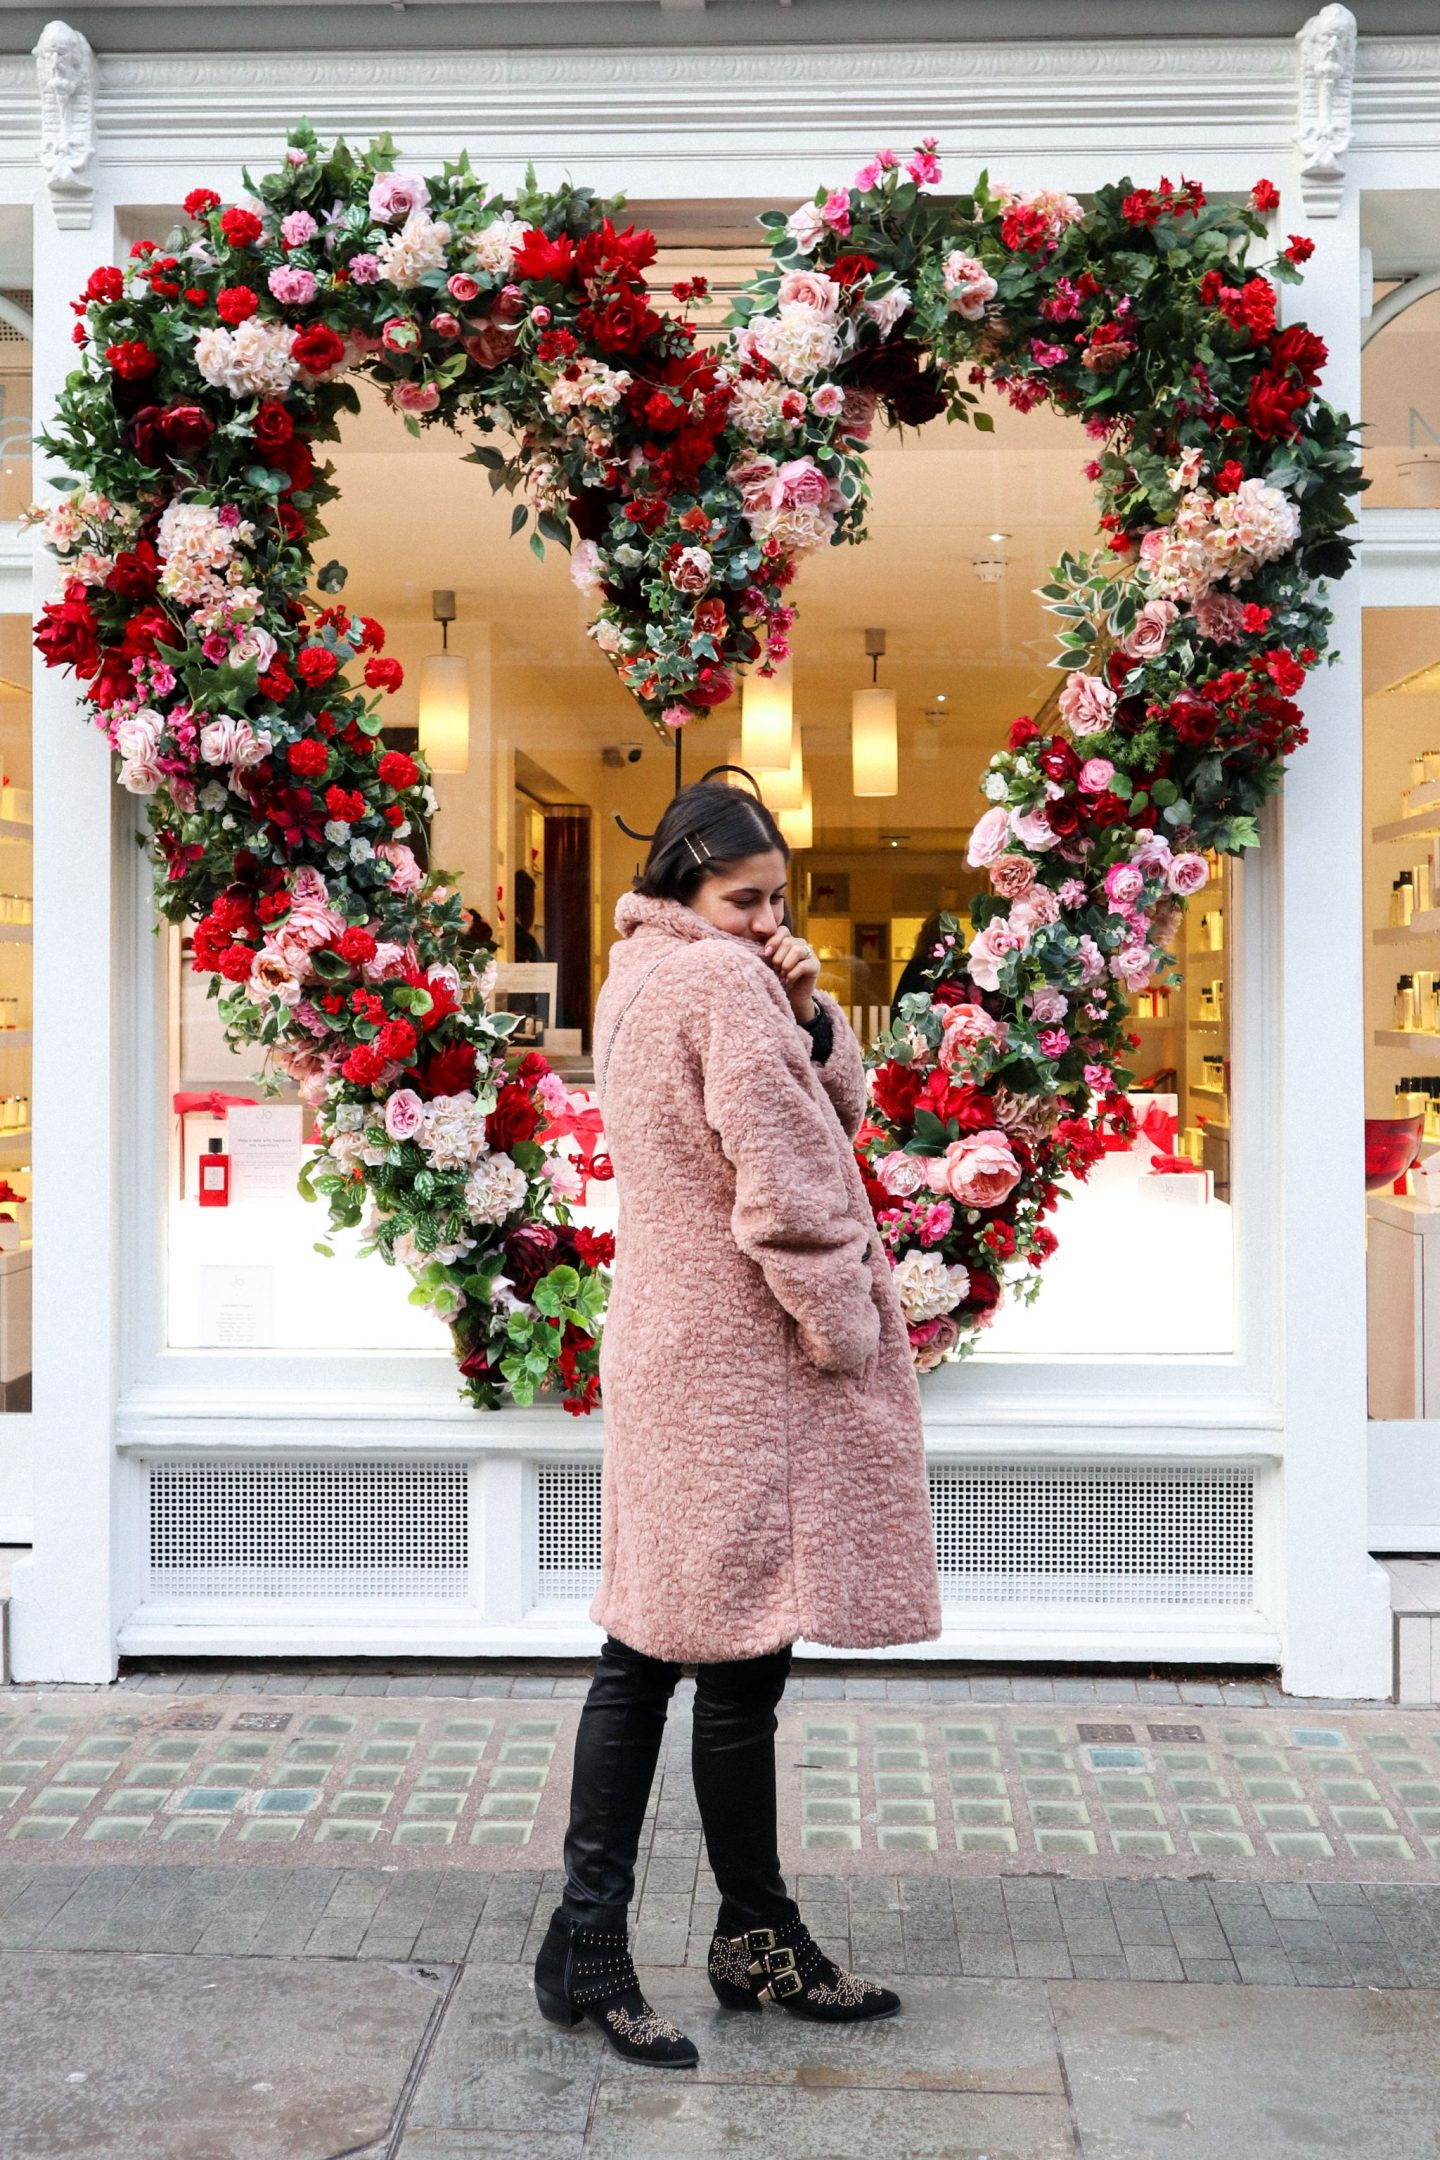 Girl in front of Flower Display in London, wearing pink coat